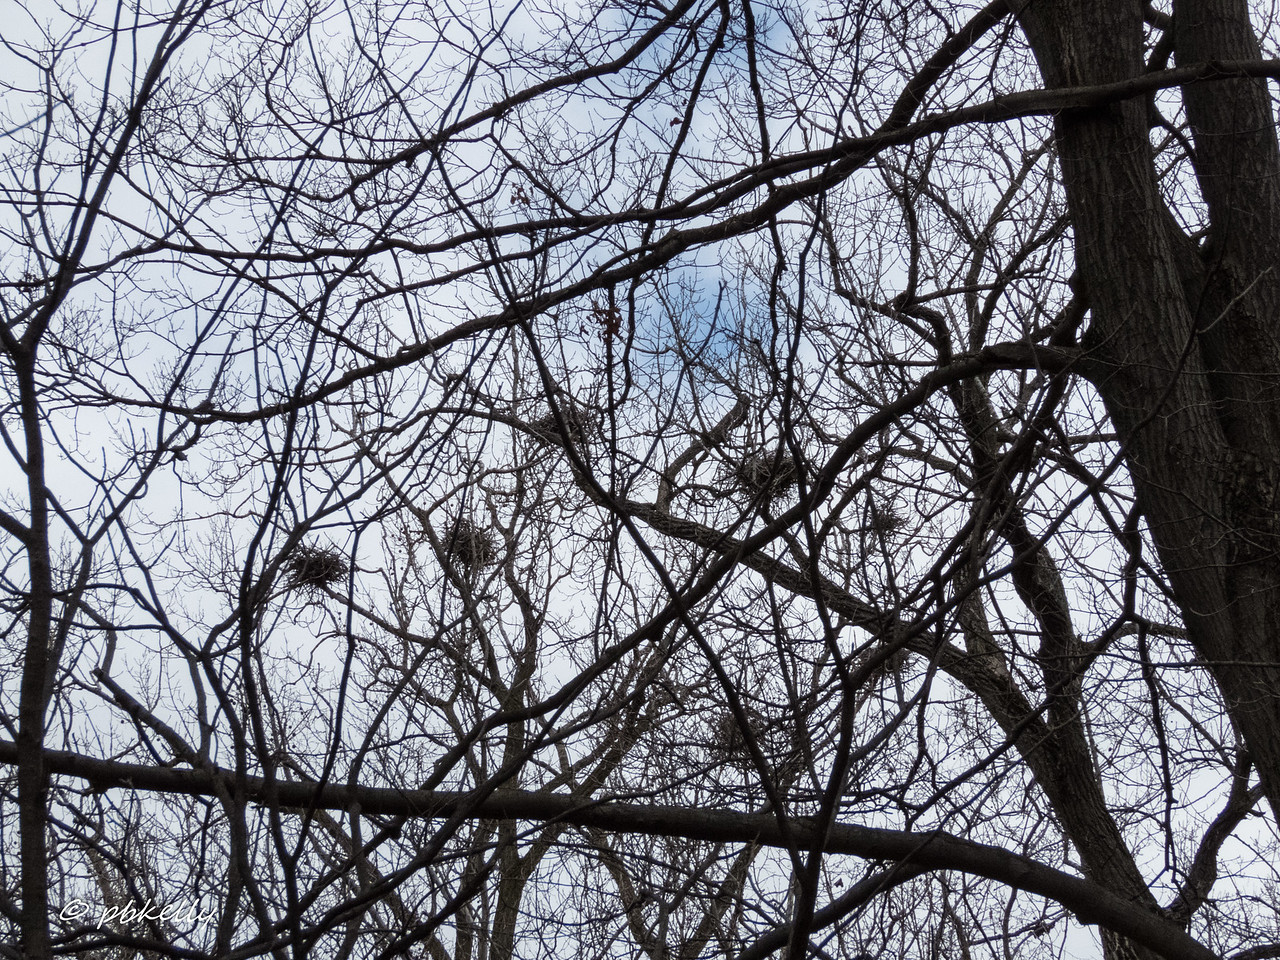 2-25-17.  Medina Preserve with CMNH.  Didn't look like the Herons had returned to their nests yet, although they were reported in the Cuyahoga Valley.  No owls taking over any nests, either.